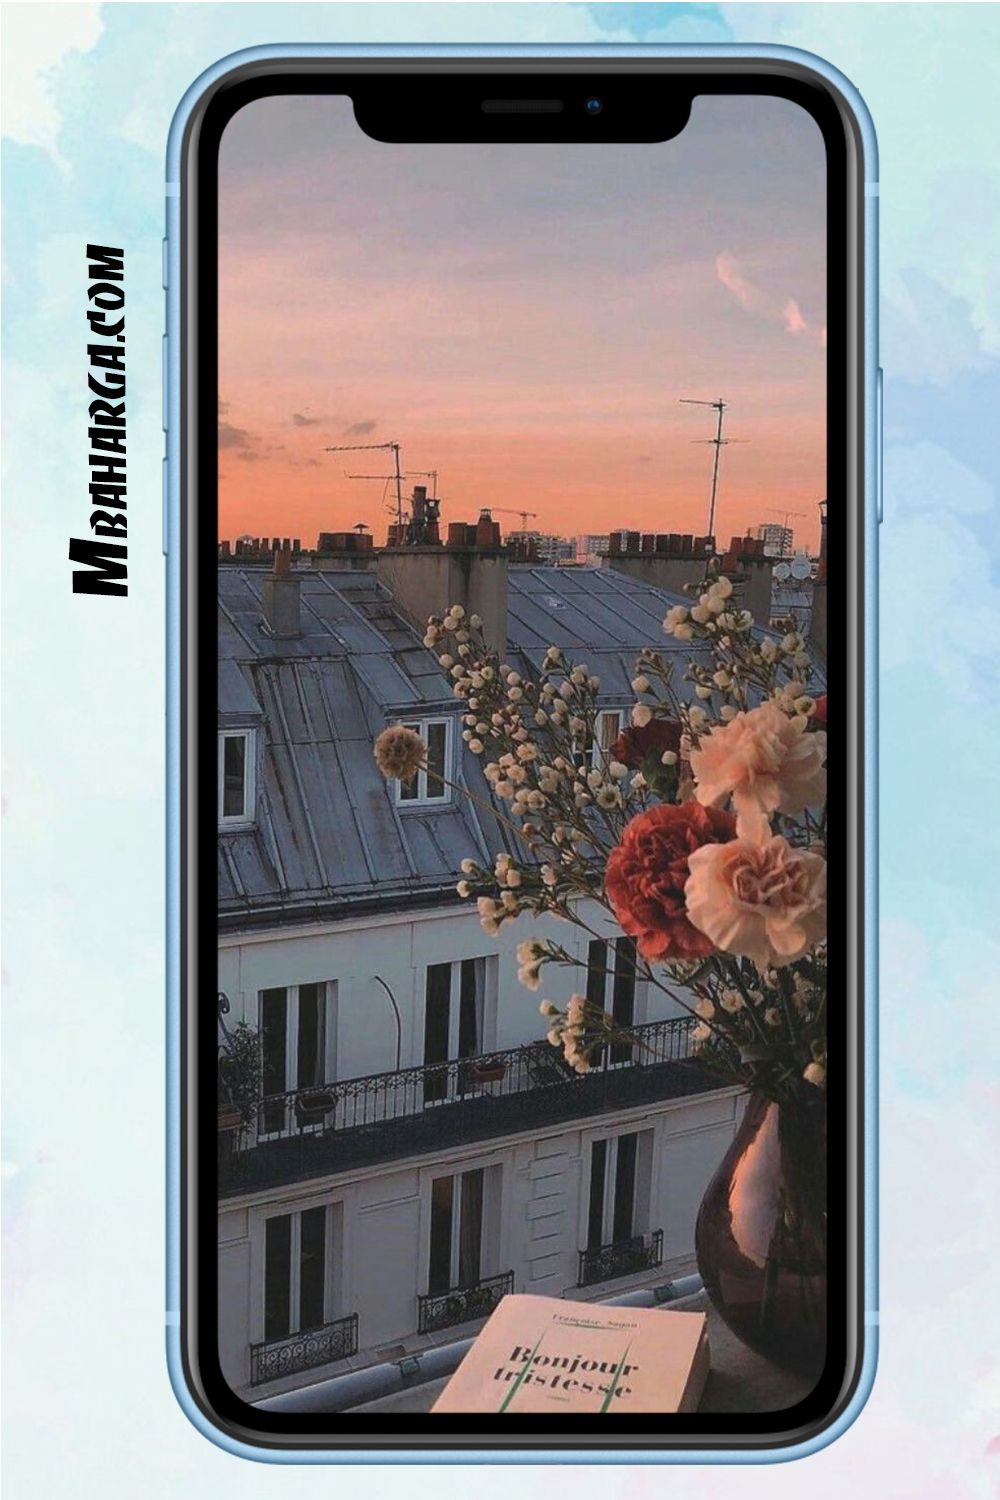 Iphone X Wallpaper Hides Notch In 2020 Iphone Wallpaper Images Iphone Wallpaper Iphone